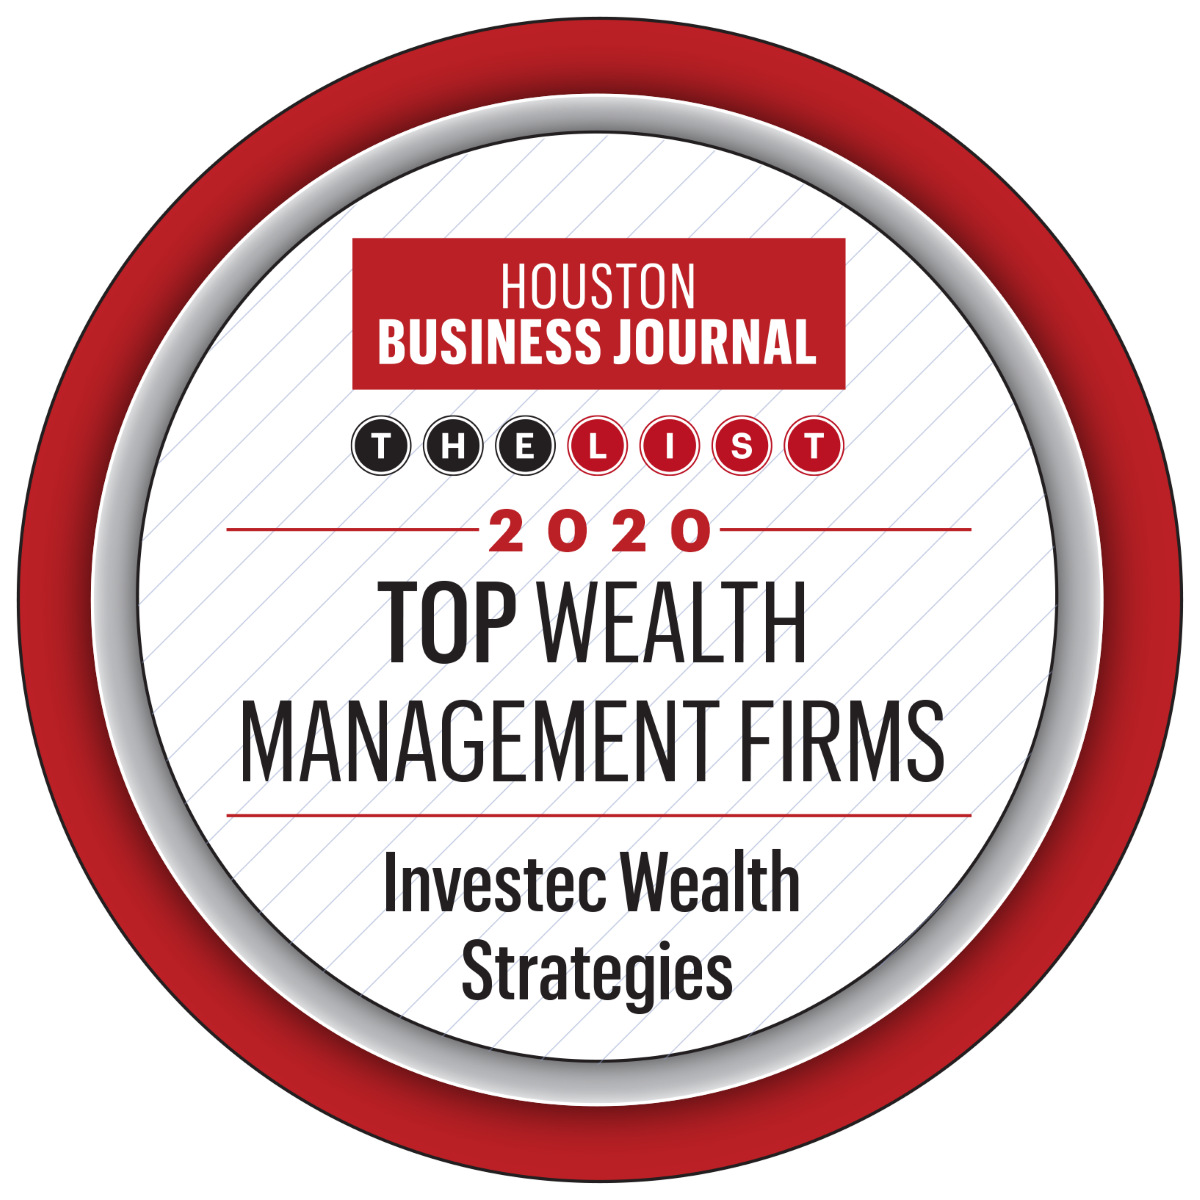 Investec - Houston Business Journal Largest Houston-Area Wealth Management Firms, 2020